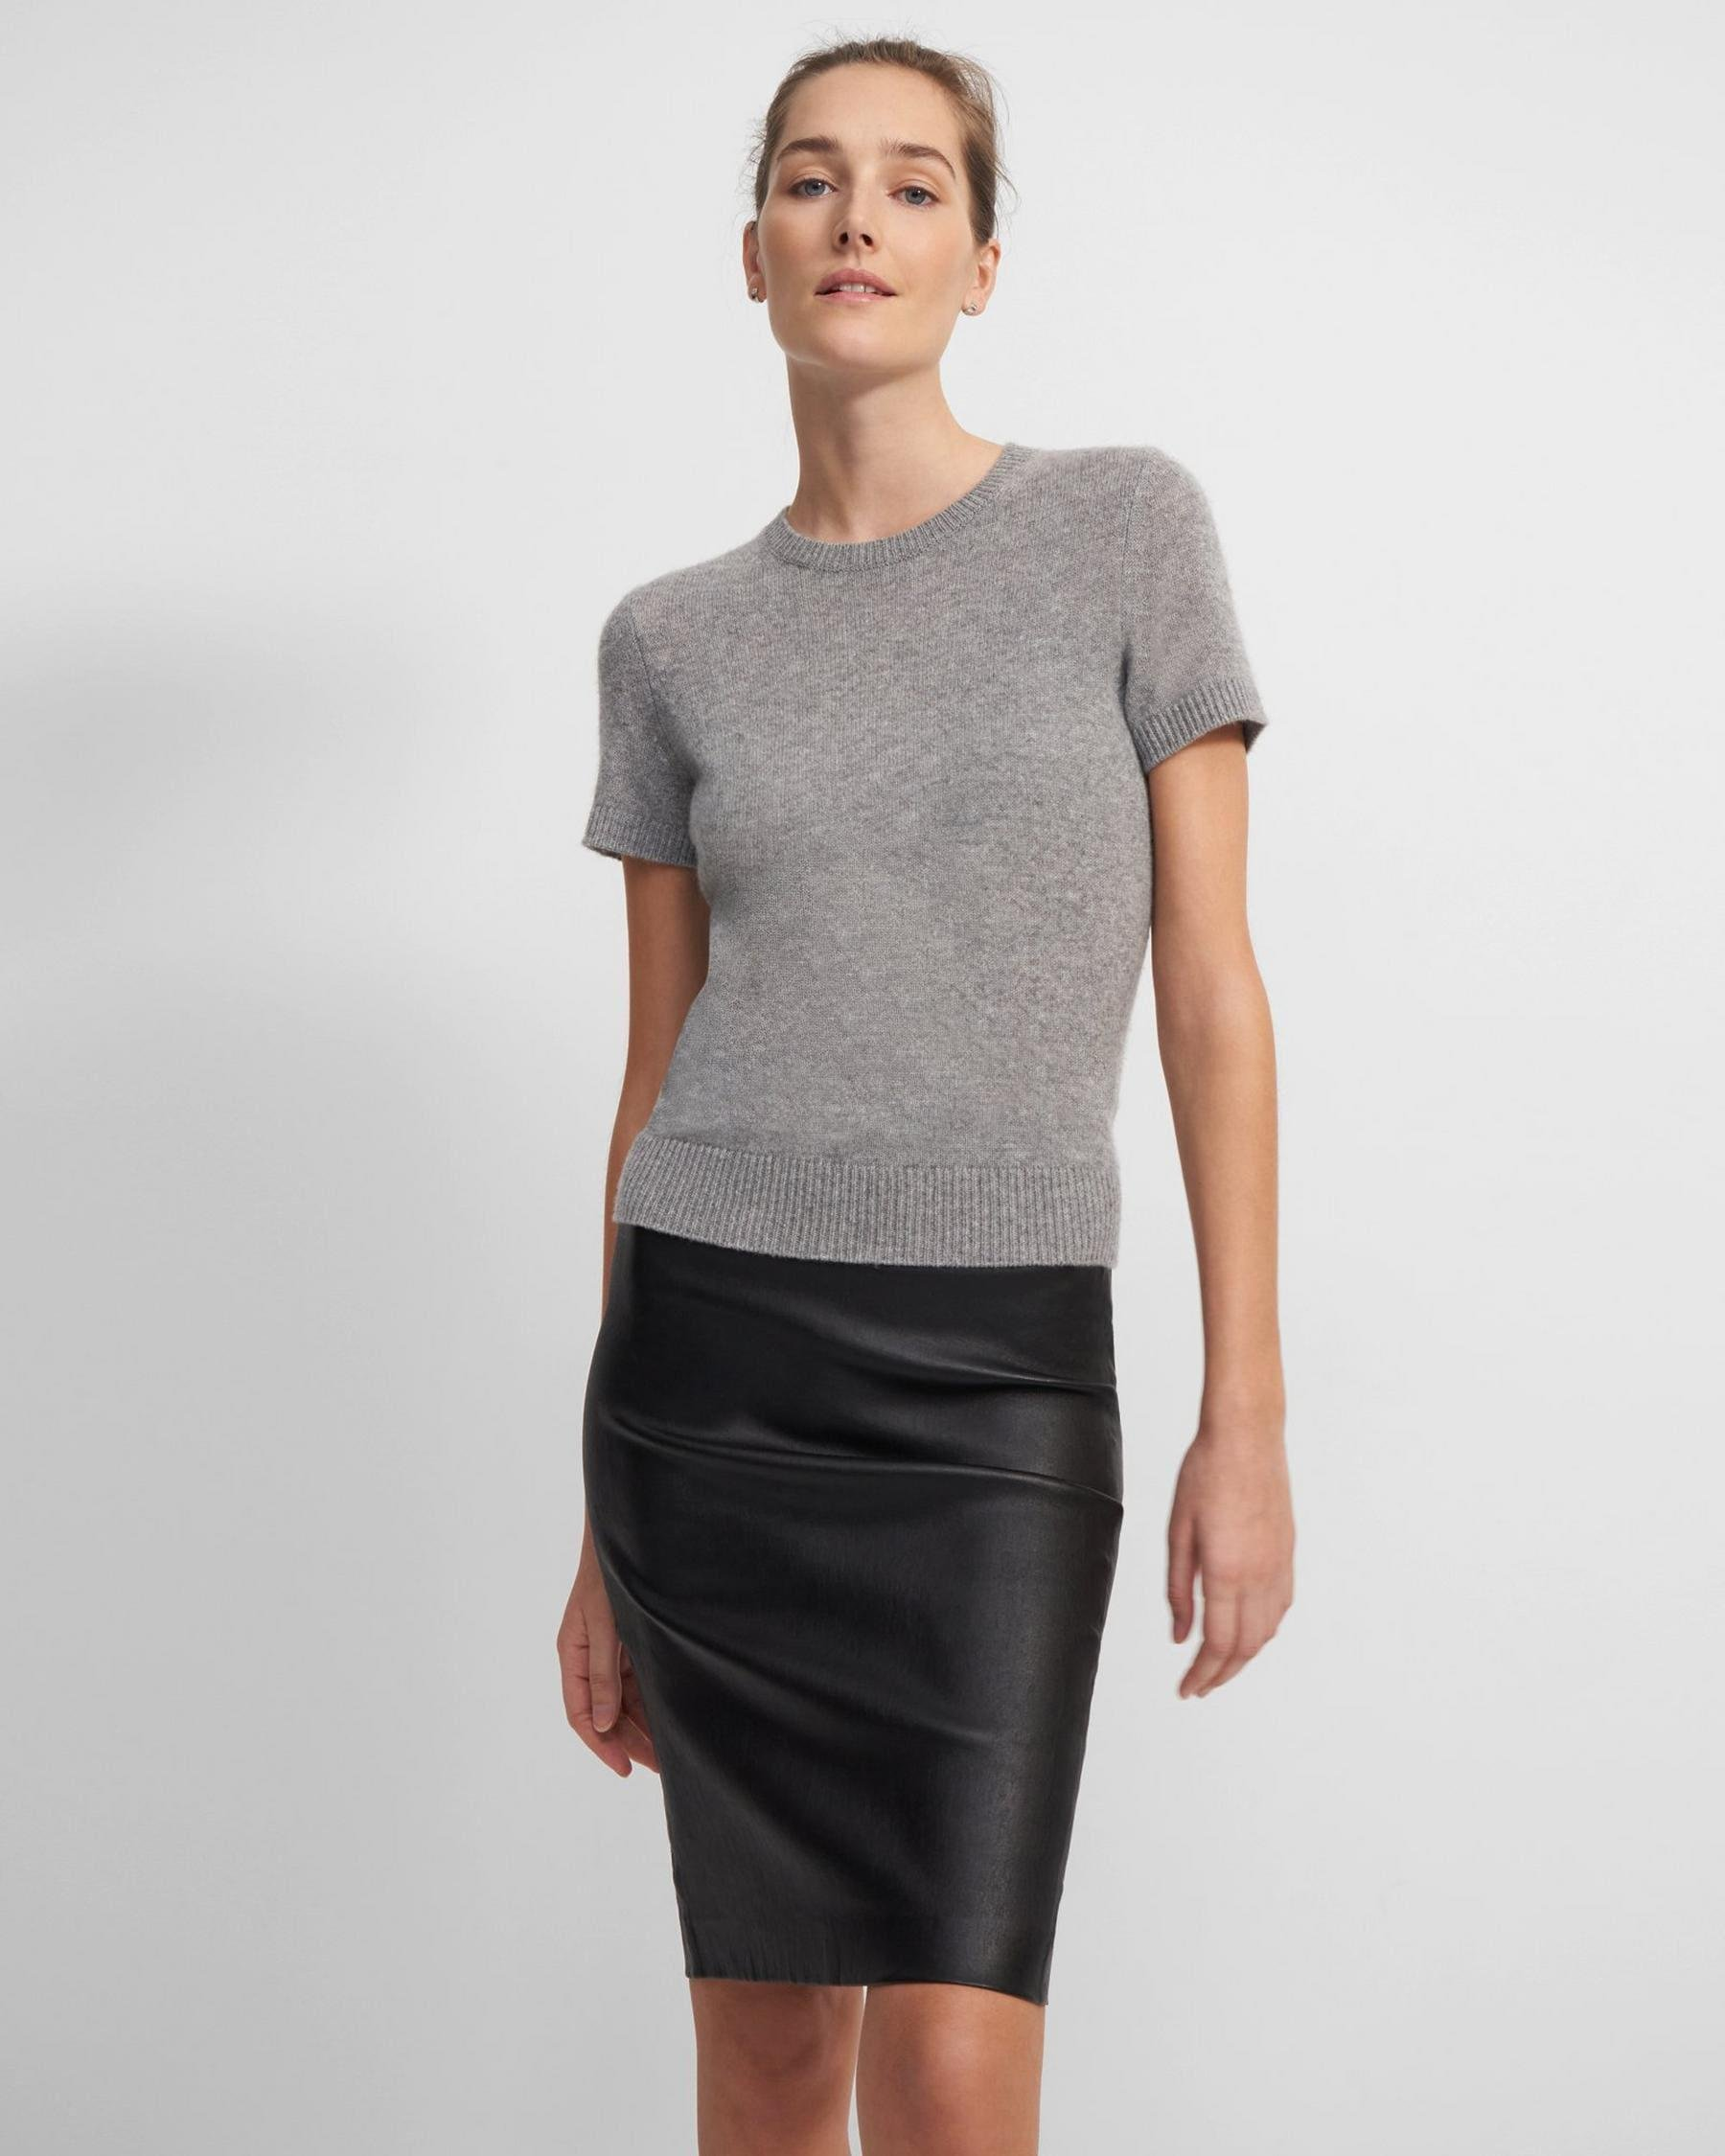 Pencil Skirt in Leather 3